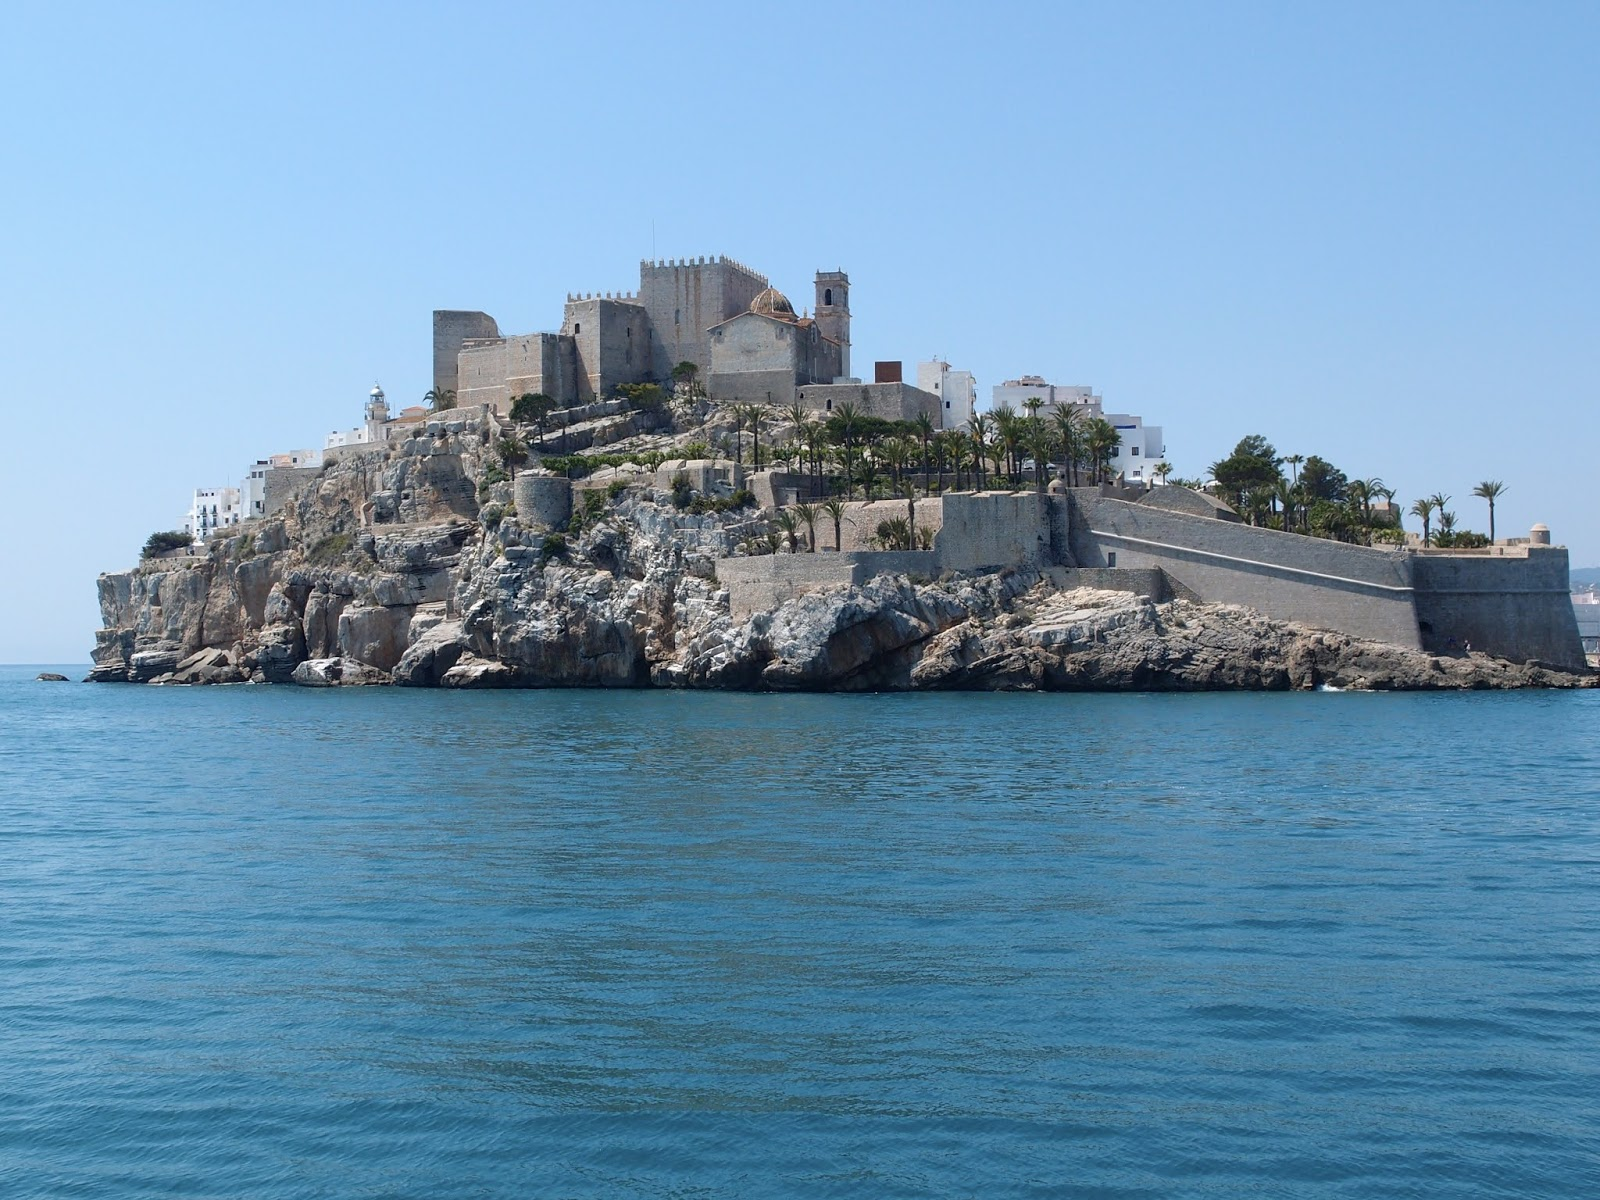 Old town and castle, Peñiscola, Spain